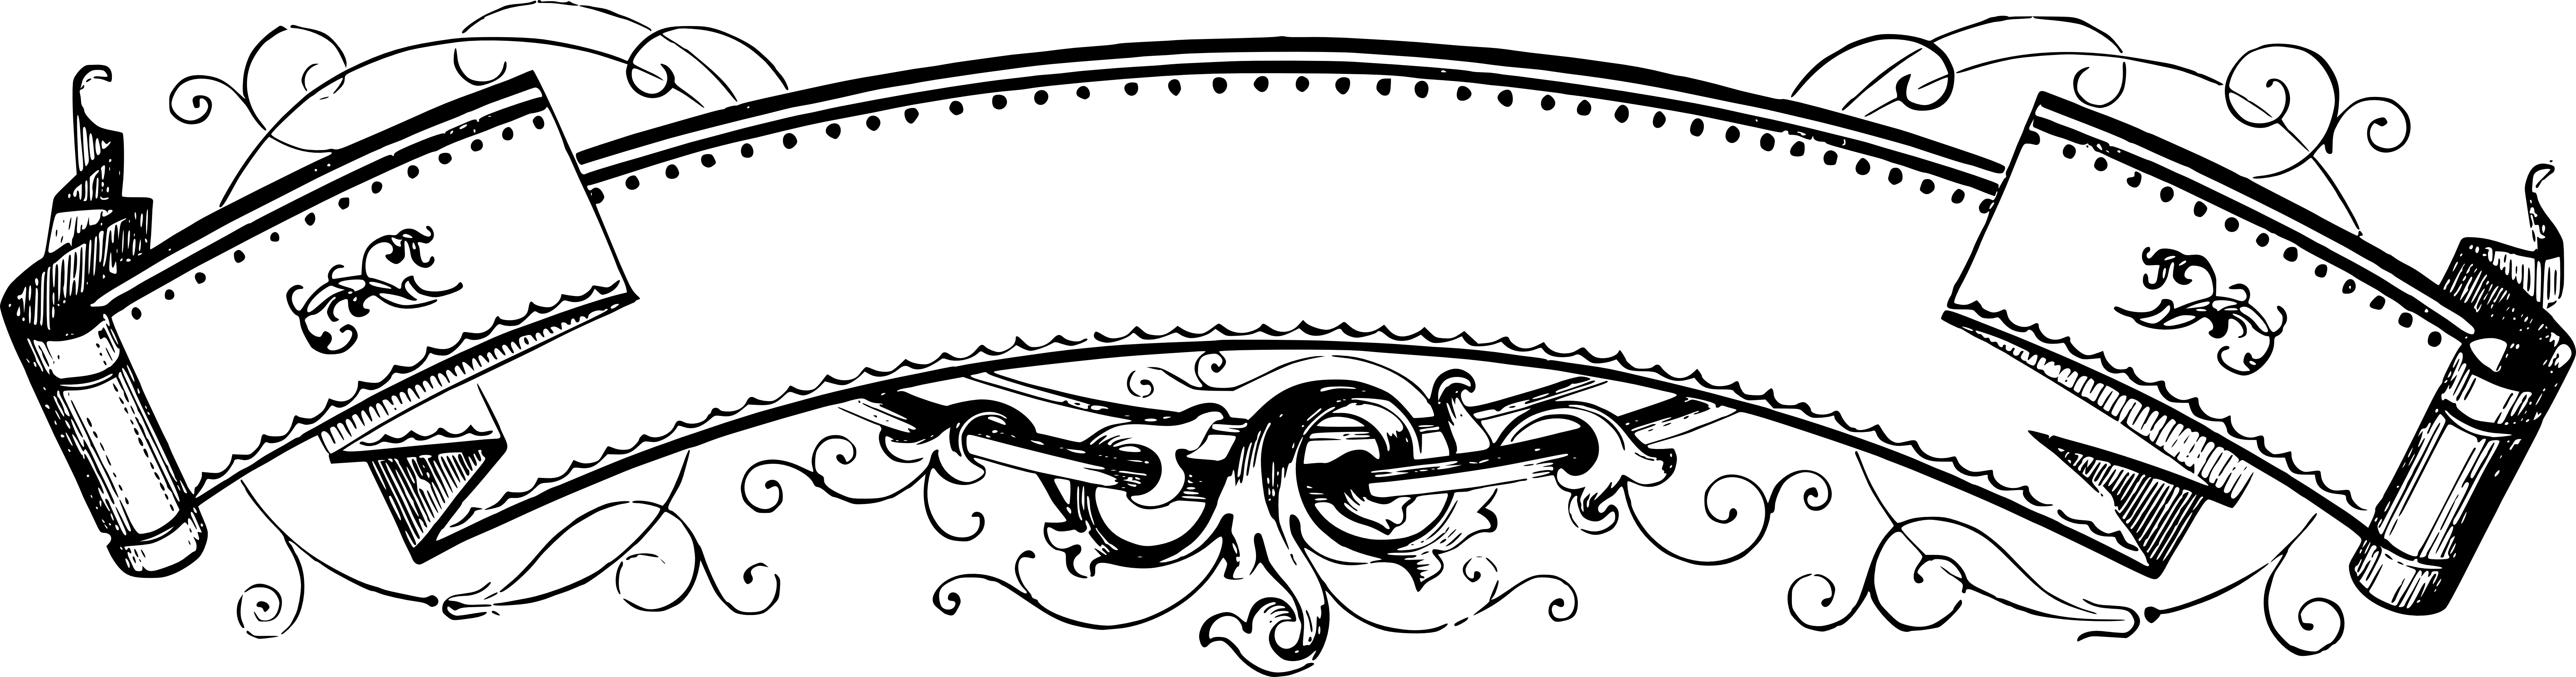 Free ribbon cliparts download. Banners clipart victorian